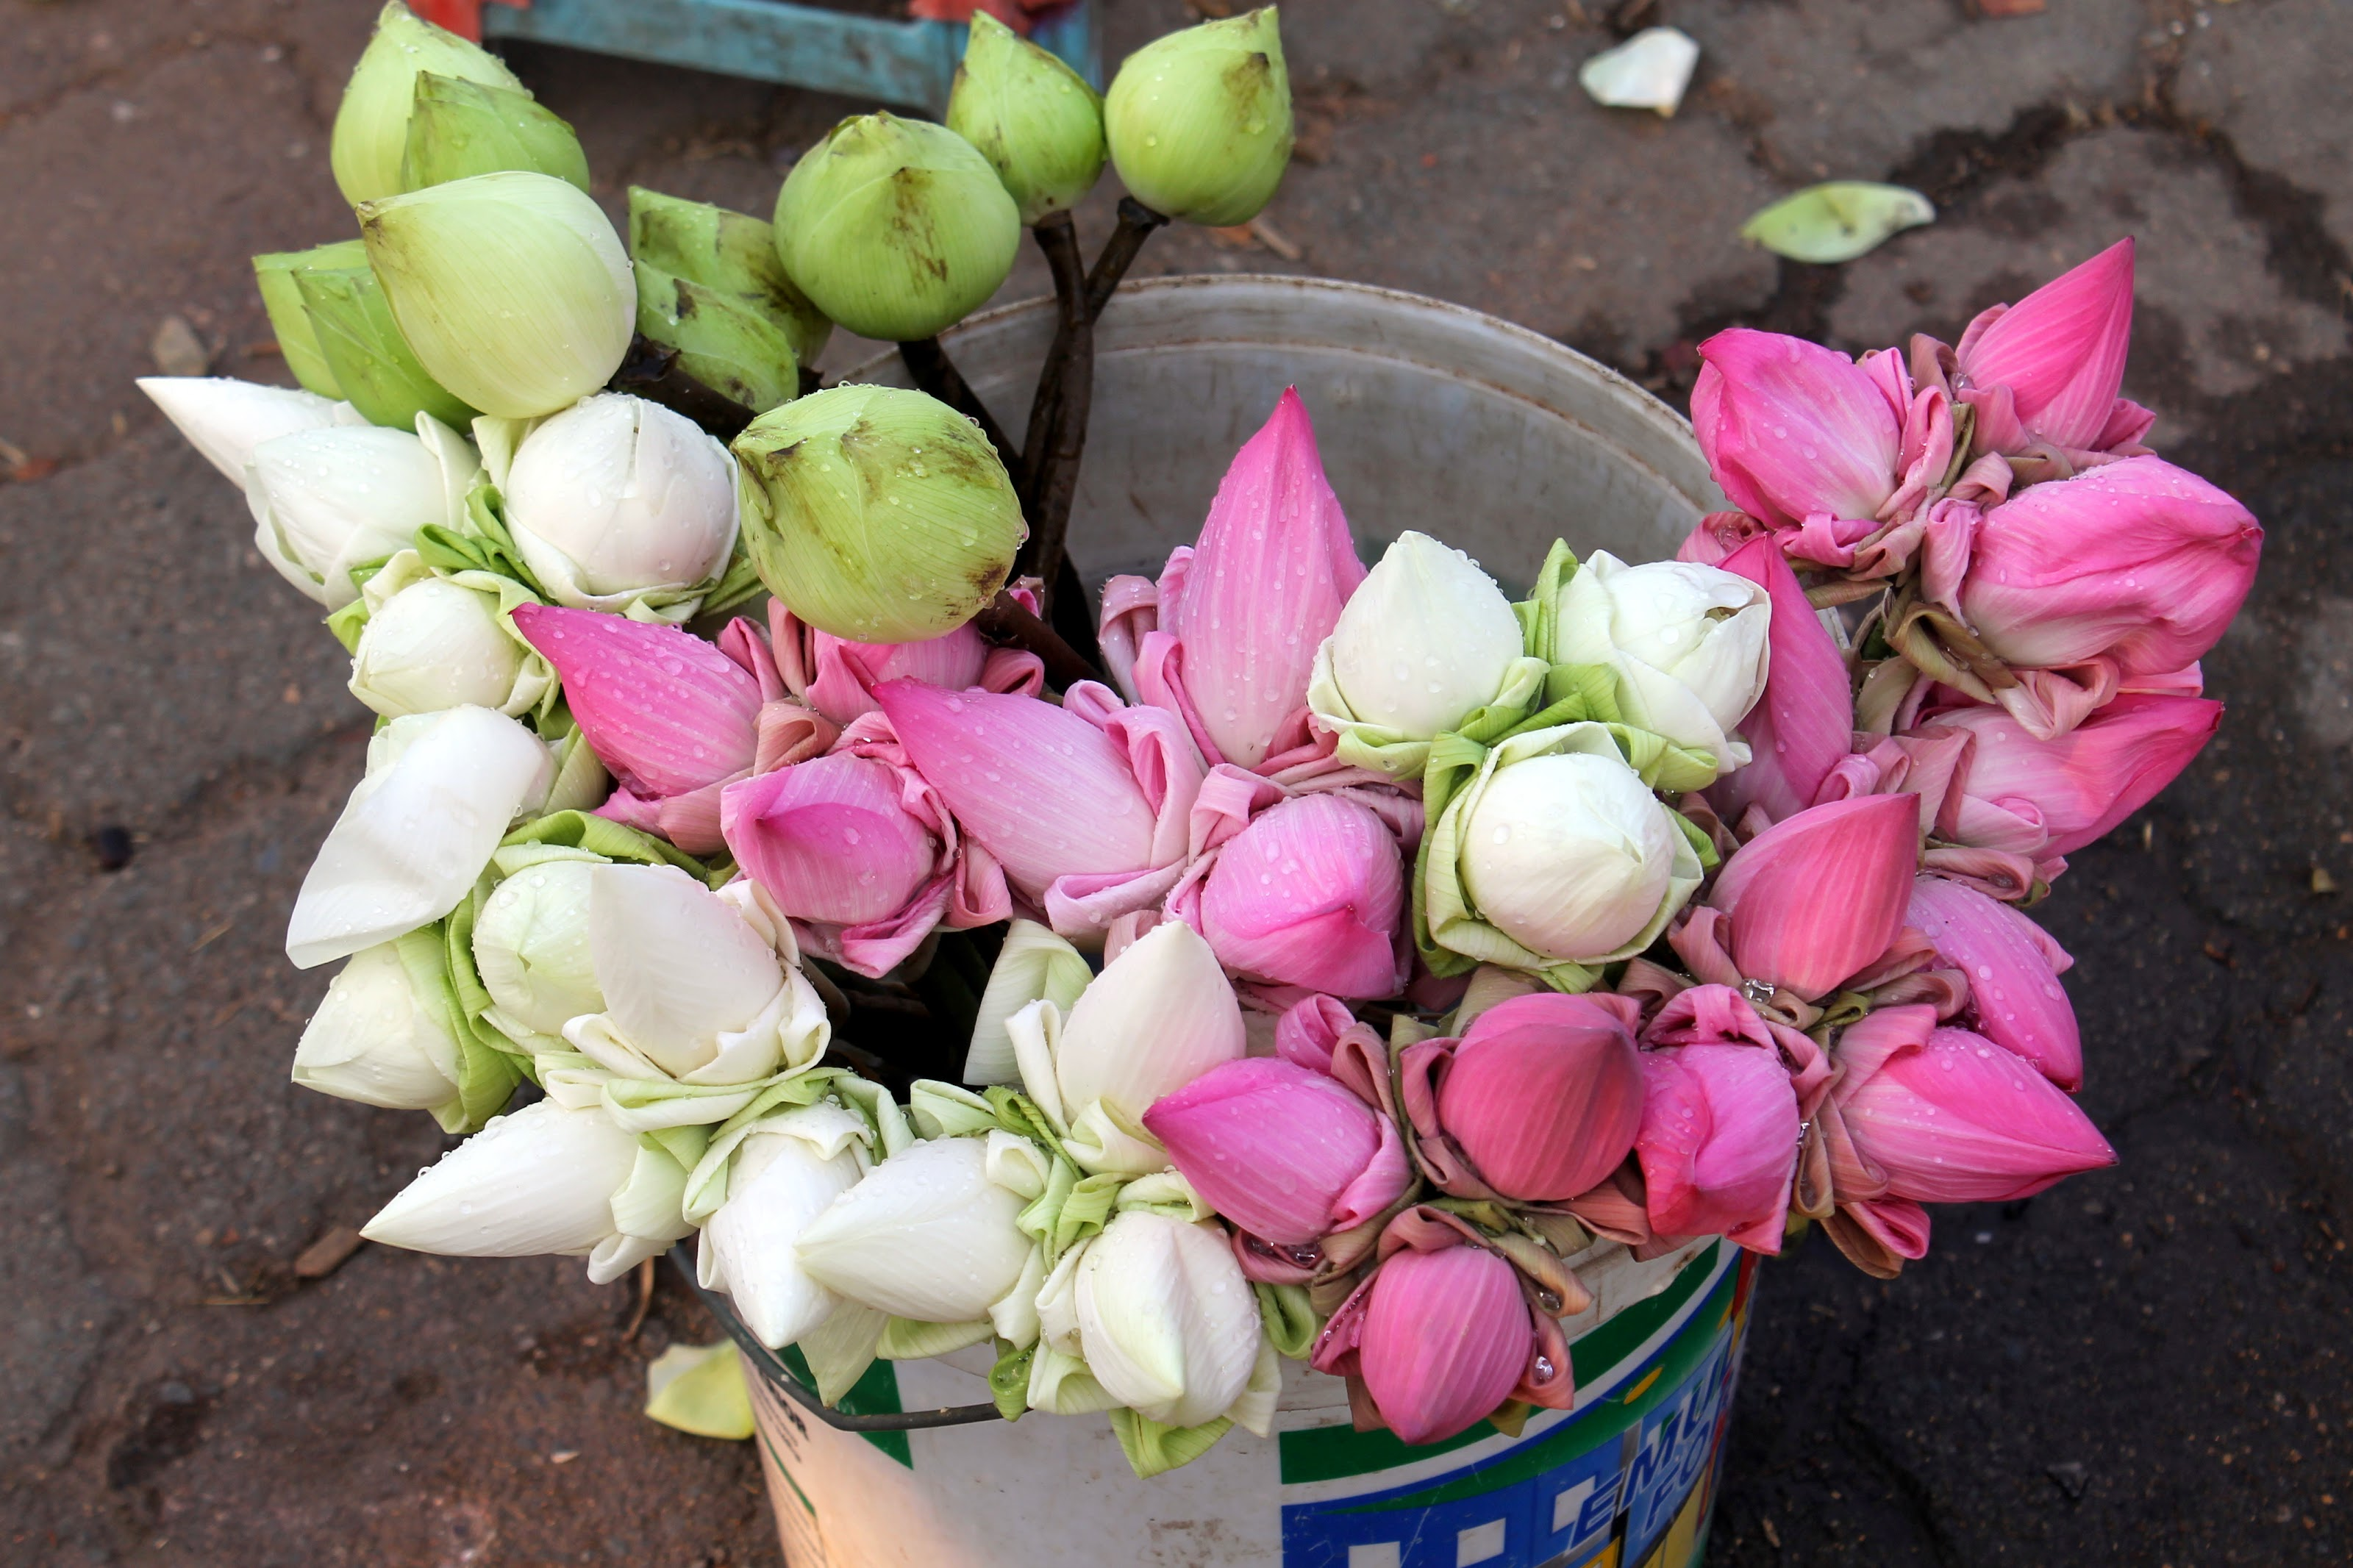 Lincoln goes to indonesia and thailand and phnom penh royal palace after our tour of the palace grounds we headed out for a walk around the area towards the river these beautiful lotus flowers were for sale for offerings izmirmasajfo